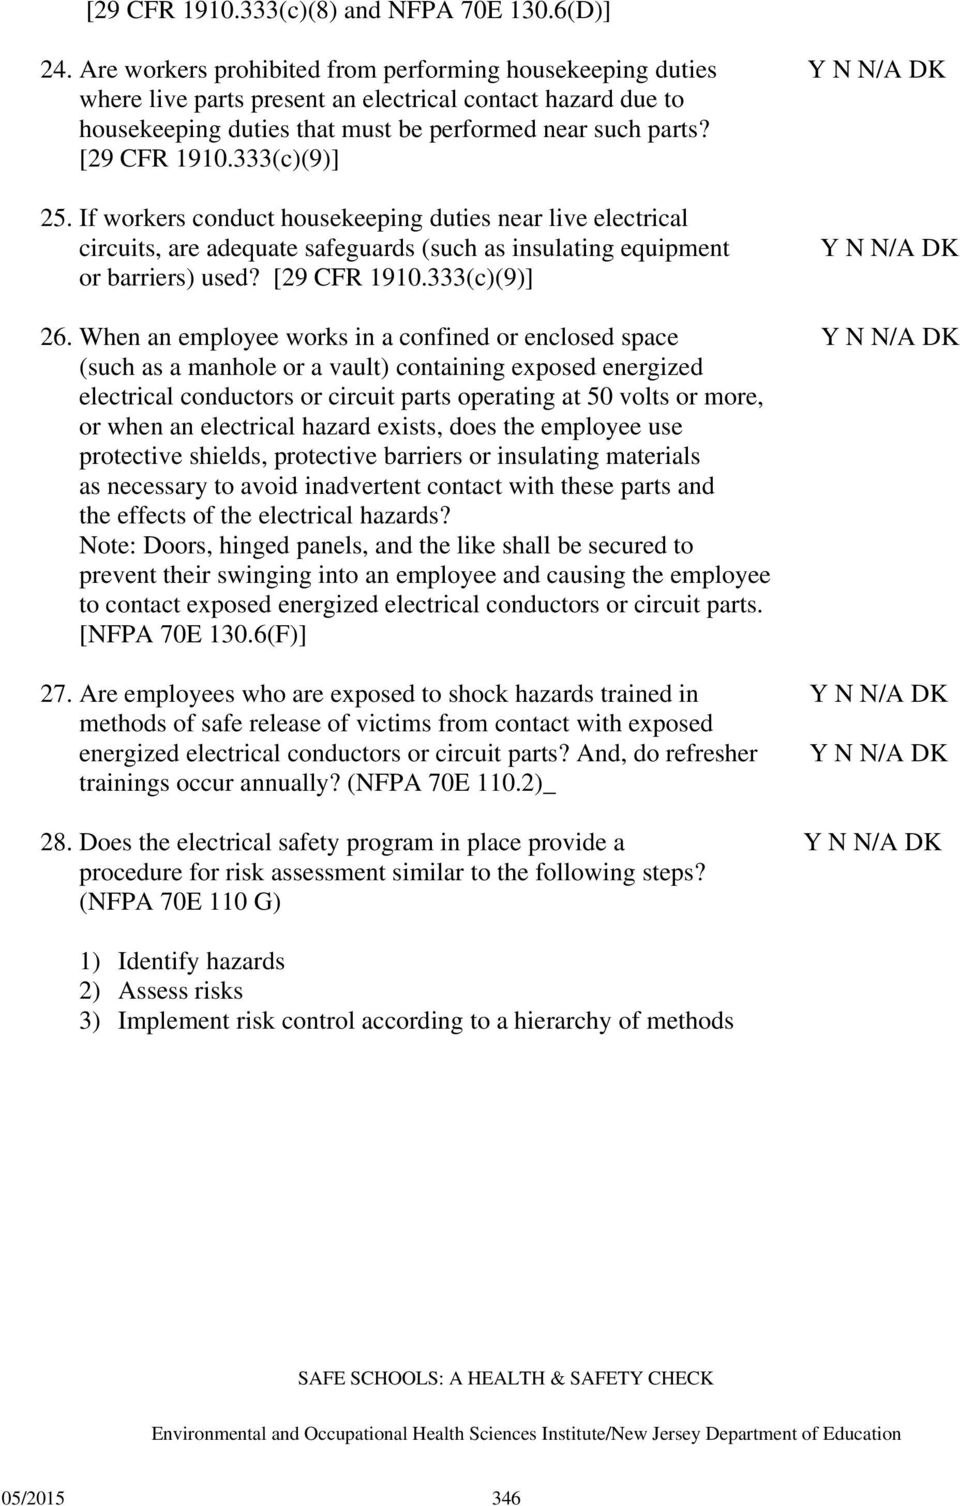 333(c)(9)] 25. If workers conduct housekeeping duties near live electrical circuits, are adequate safeguards (such as insulating equipment or barriers) used? [29 CFR 1910.333(c)(9)] 26.